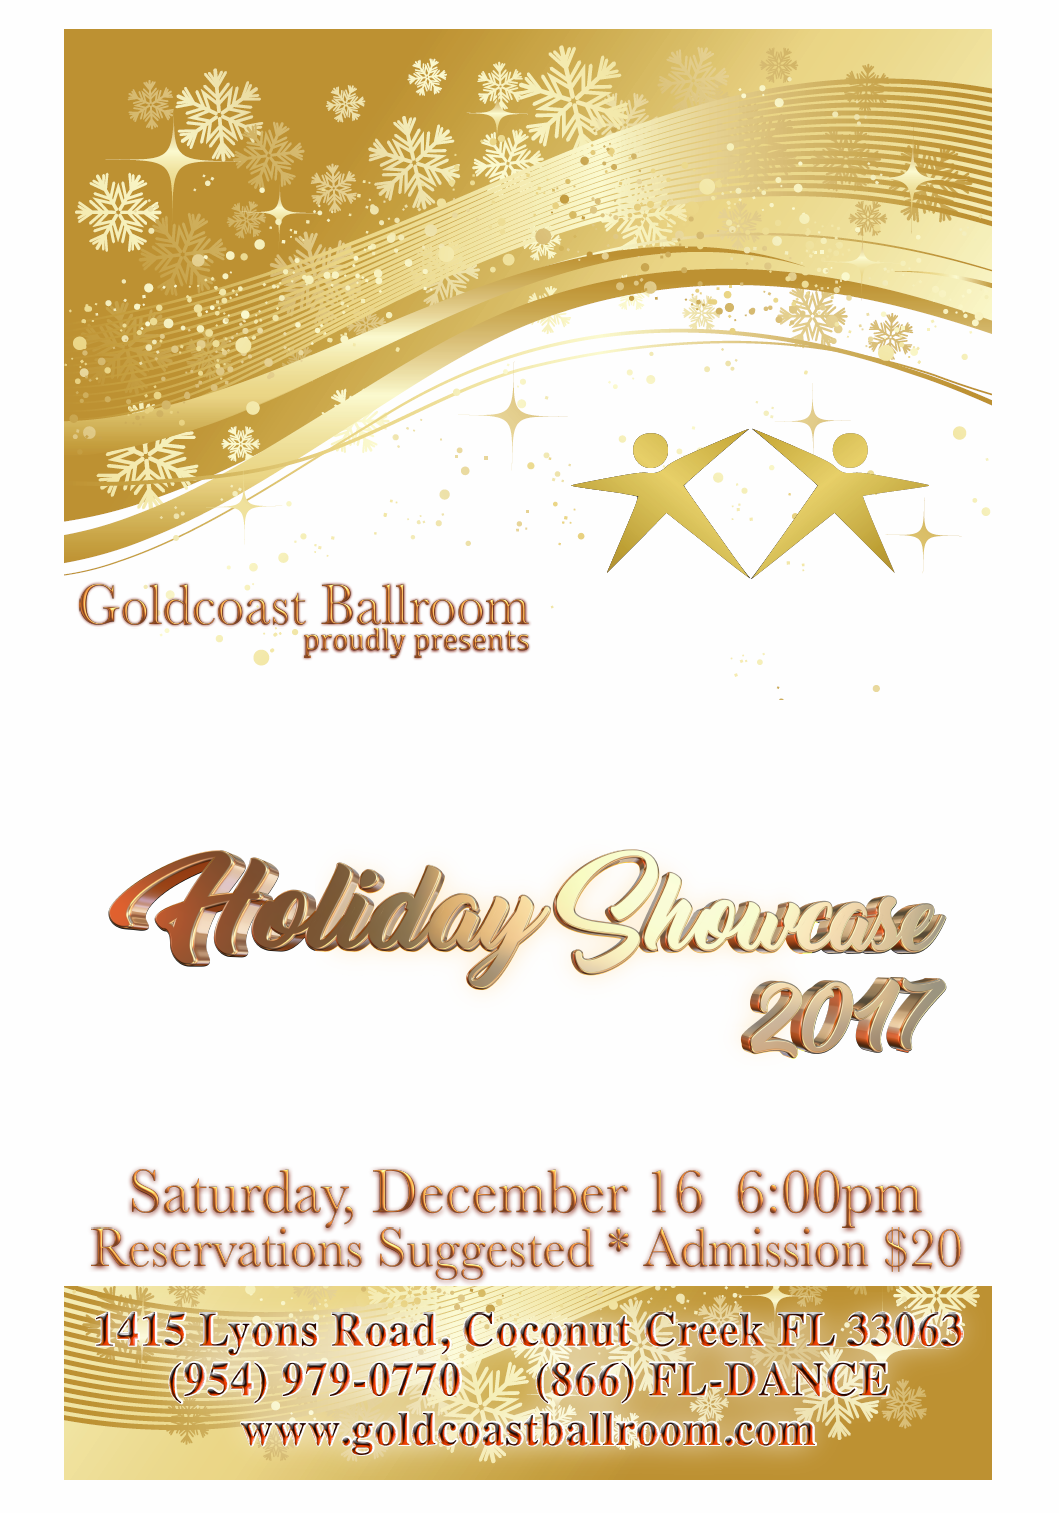 2017 Goldcoast Ballroom Holiday Showcase - Saturday, December 16, 2017